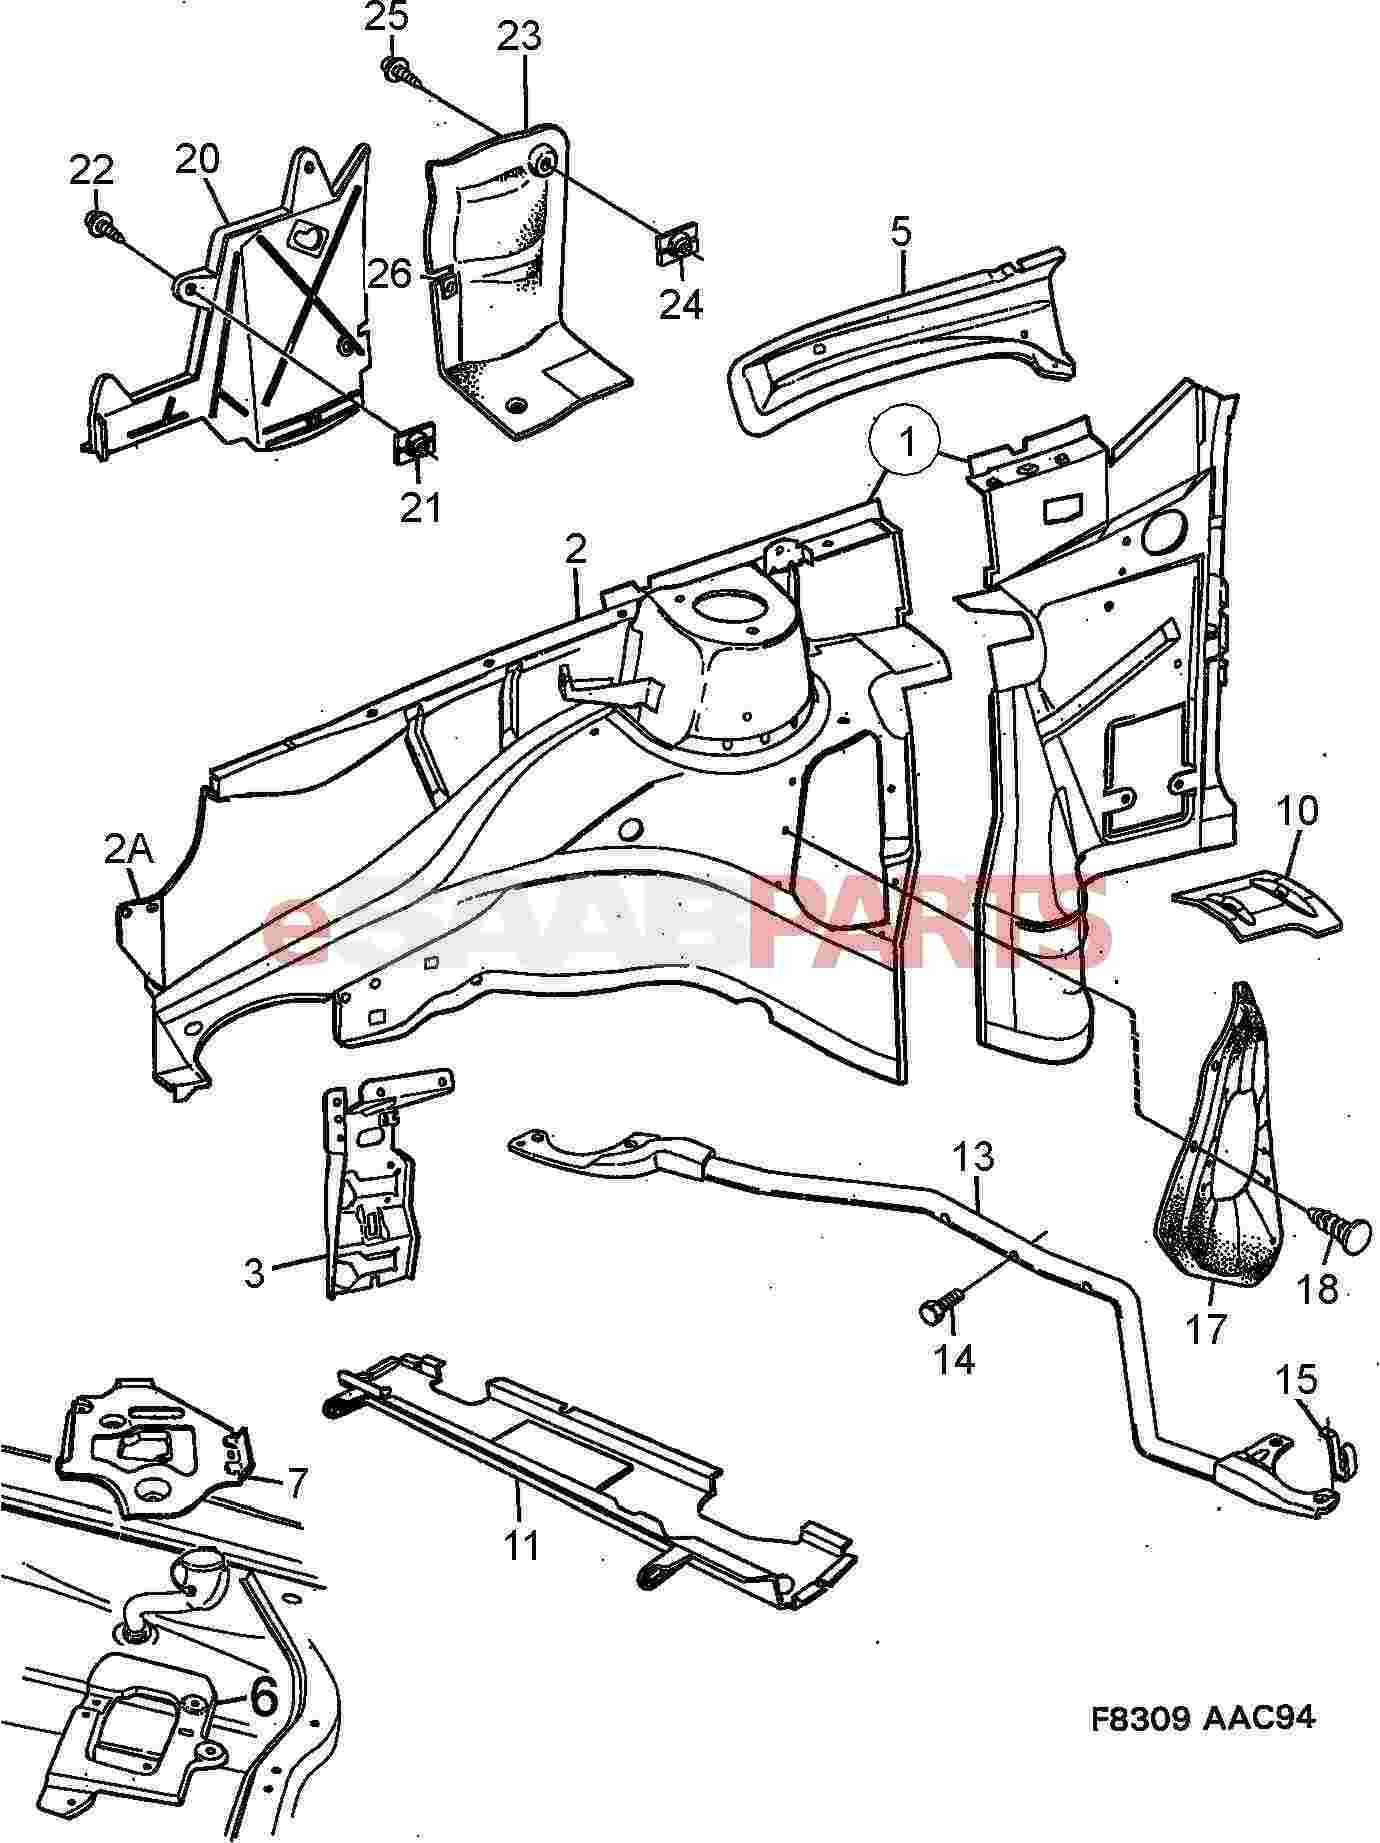 saab 900 chassis diagram